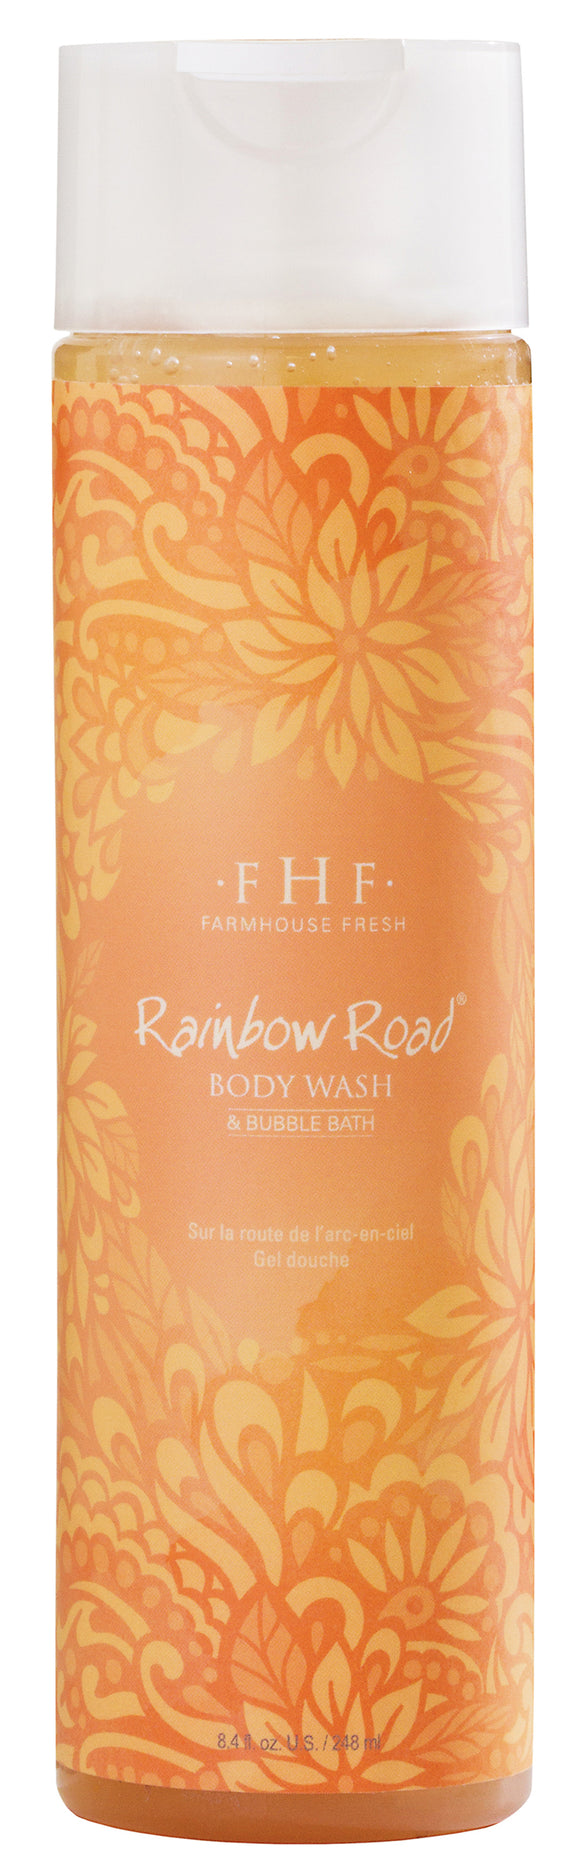 Rainbow Road Body Wash 8.4 oz by Farmhouse Fresh - D & D Collectibles